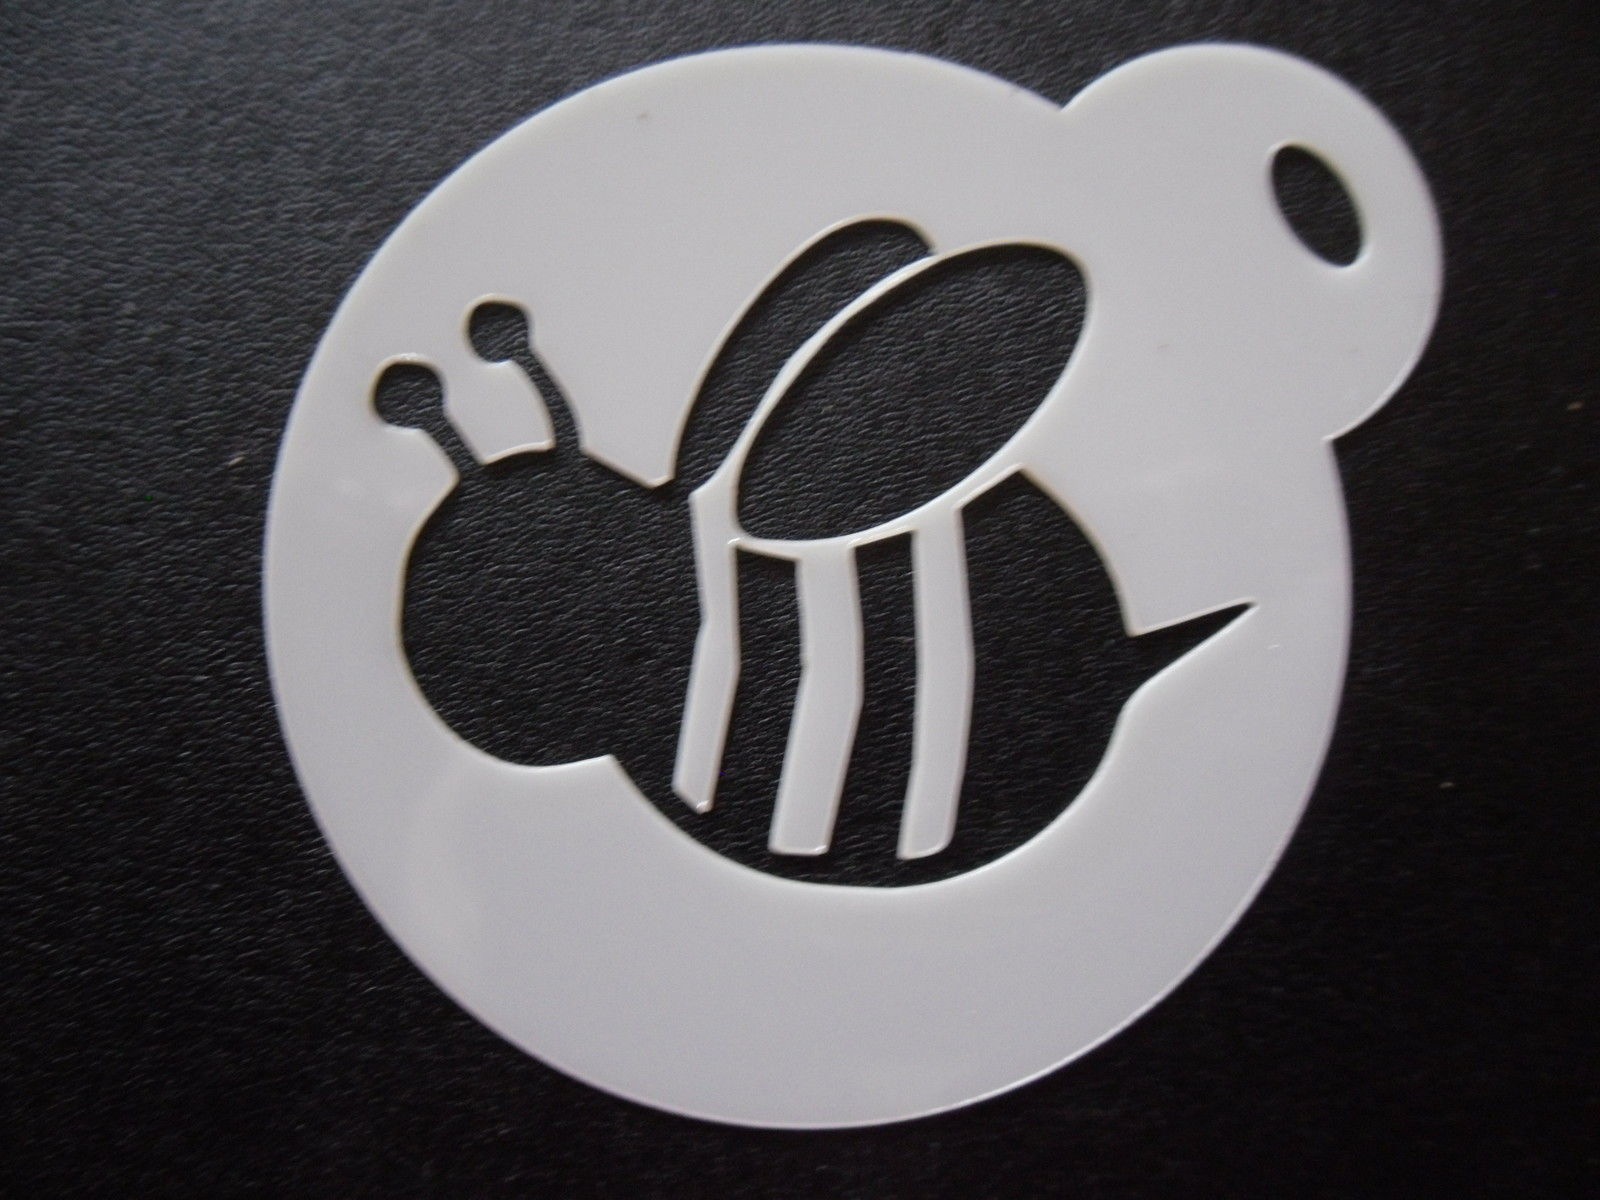 2 GBP Laser Cut Small Bumble Bee Design Cake Cookie Craft & Face